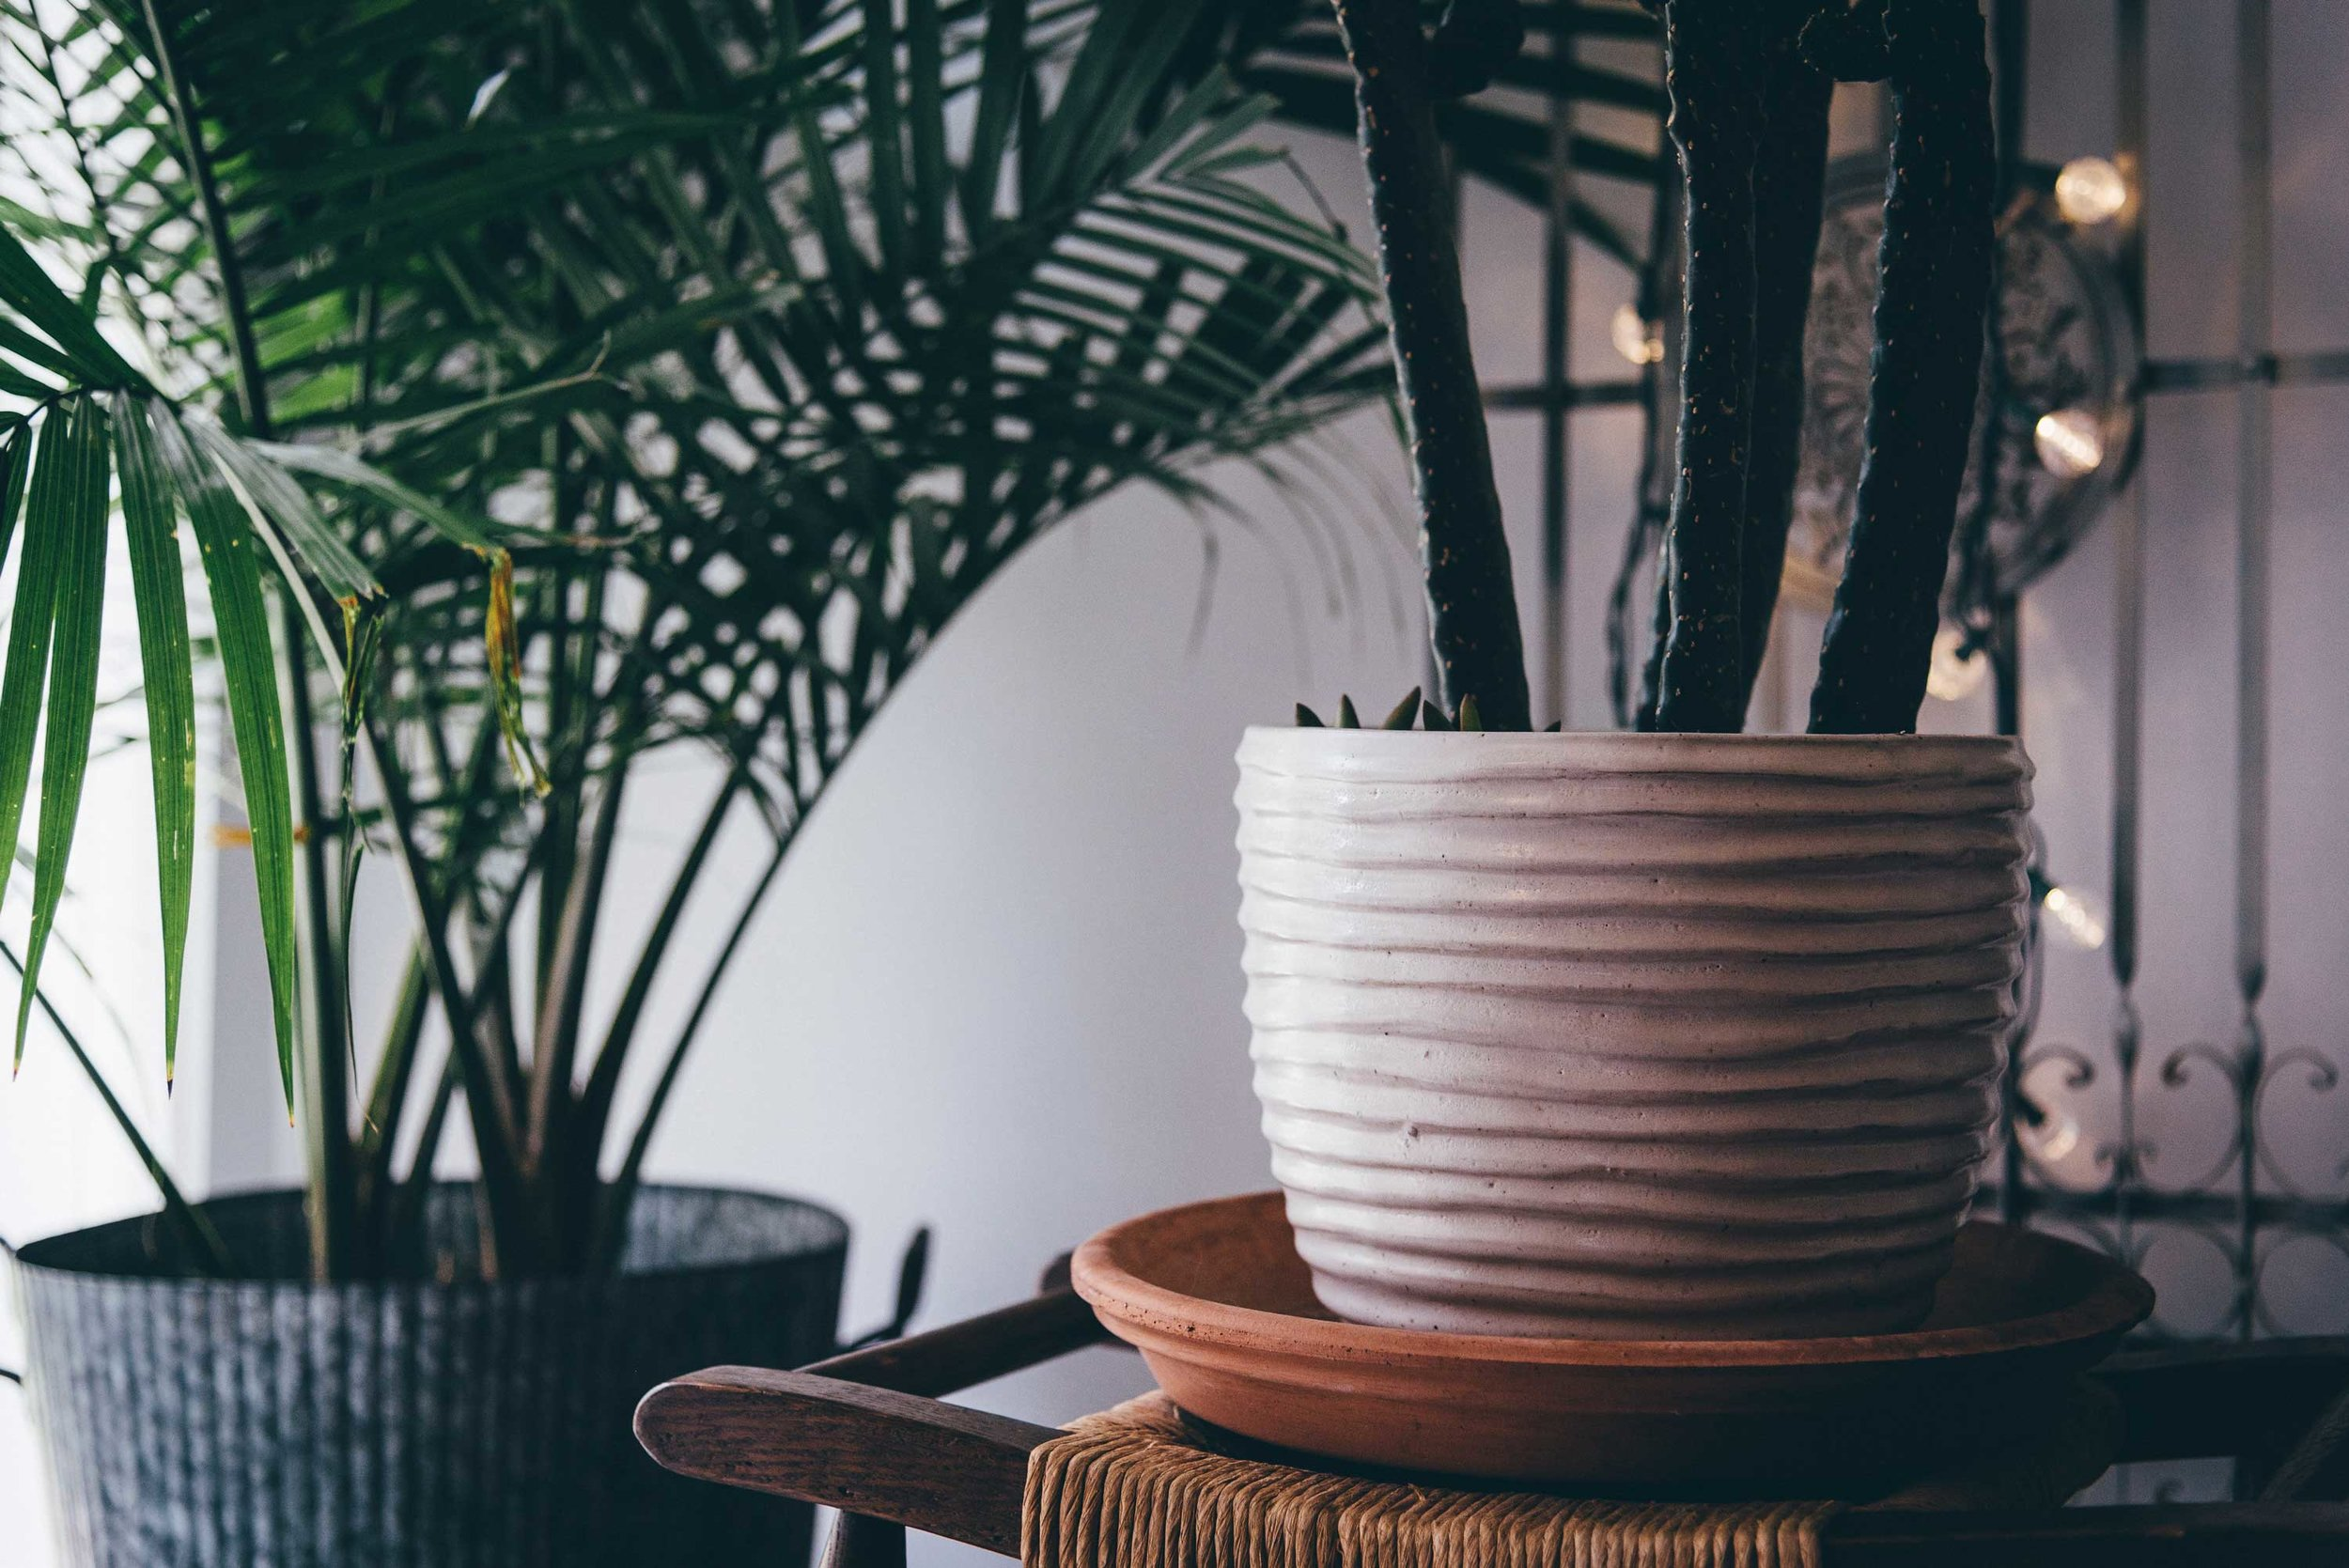 Indoor plants are proving popular in homes, and with quantifiable health benefits, what's not to love about that?